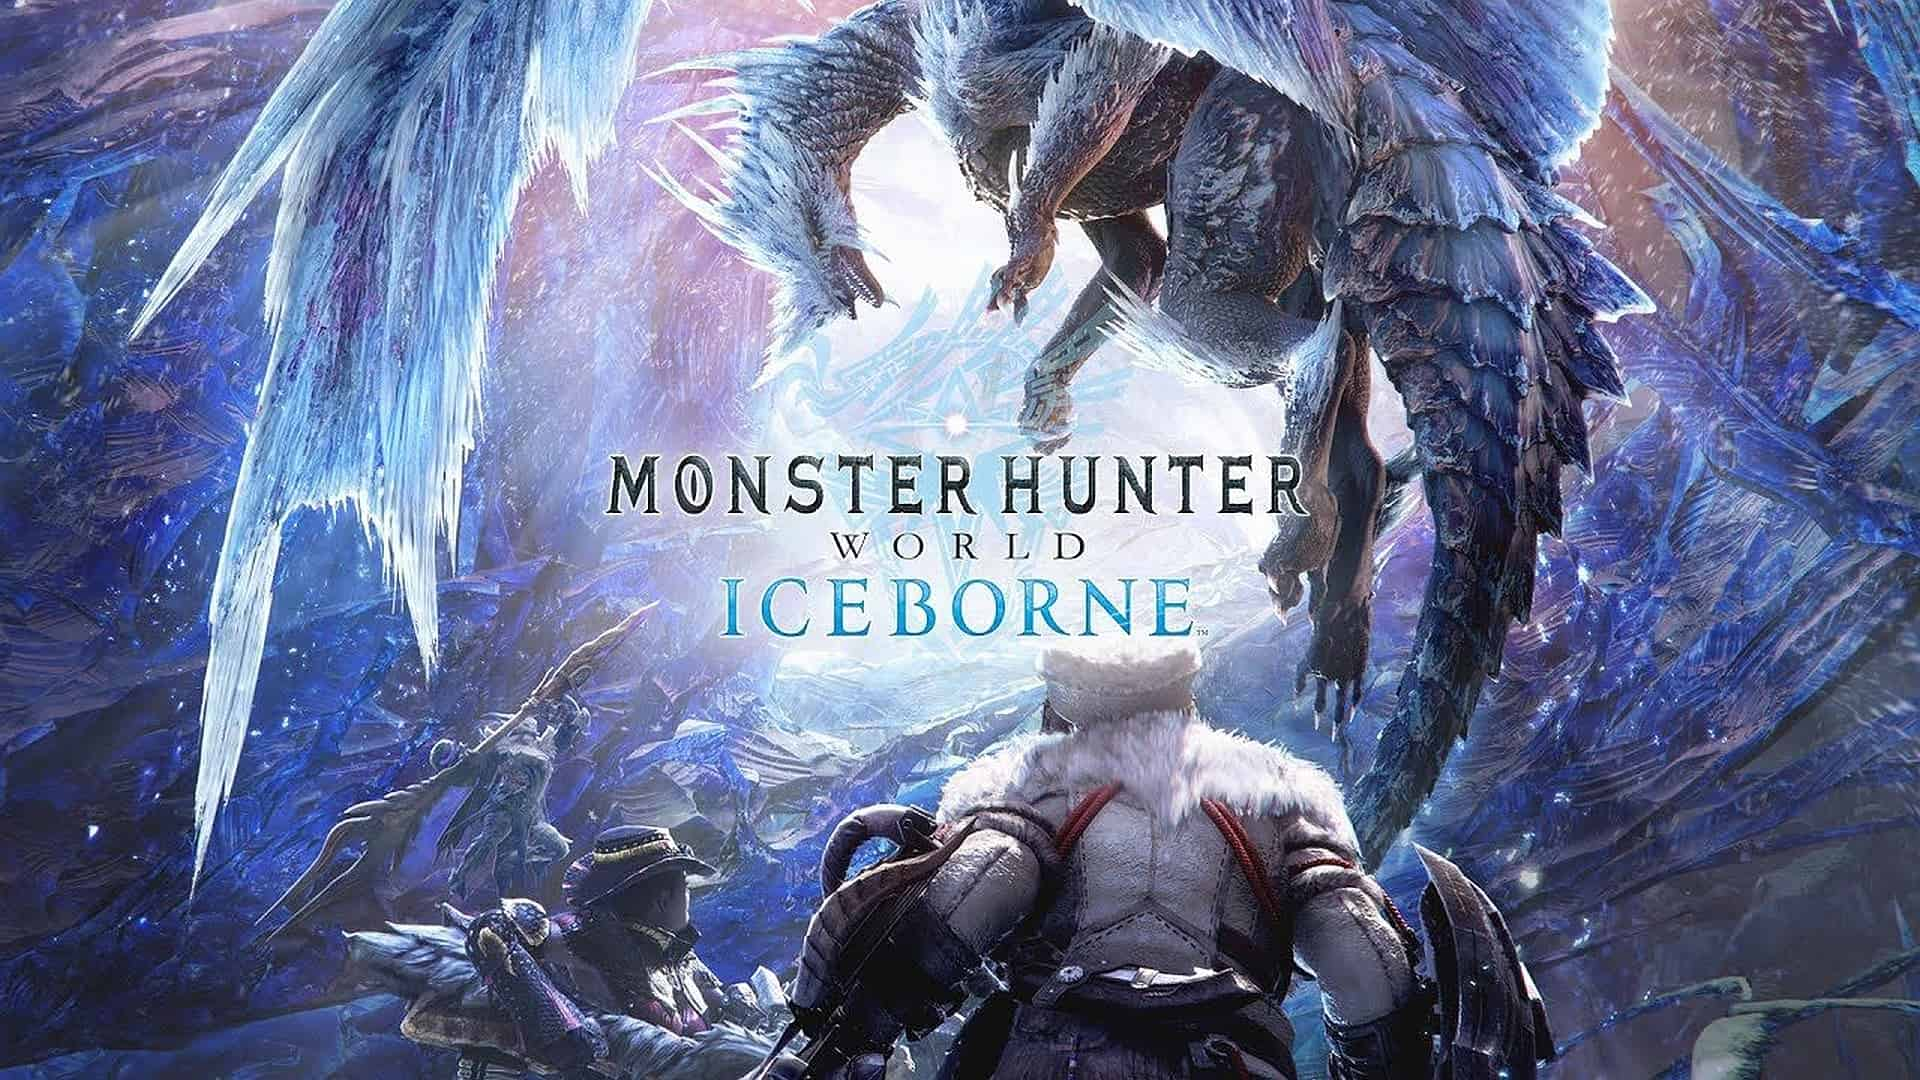 New Monster Hunter World: Iceborne Trailer Reveals Monster Subspecies, New Gathering Hub and More